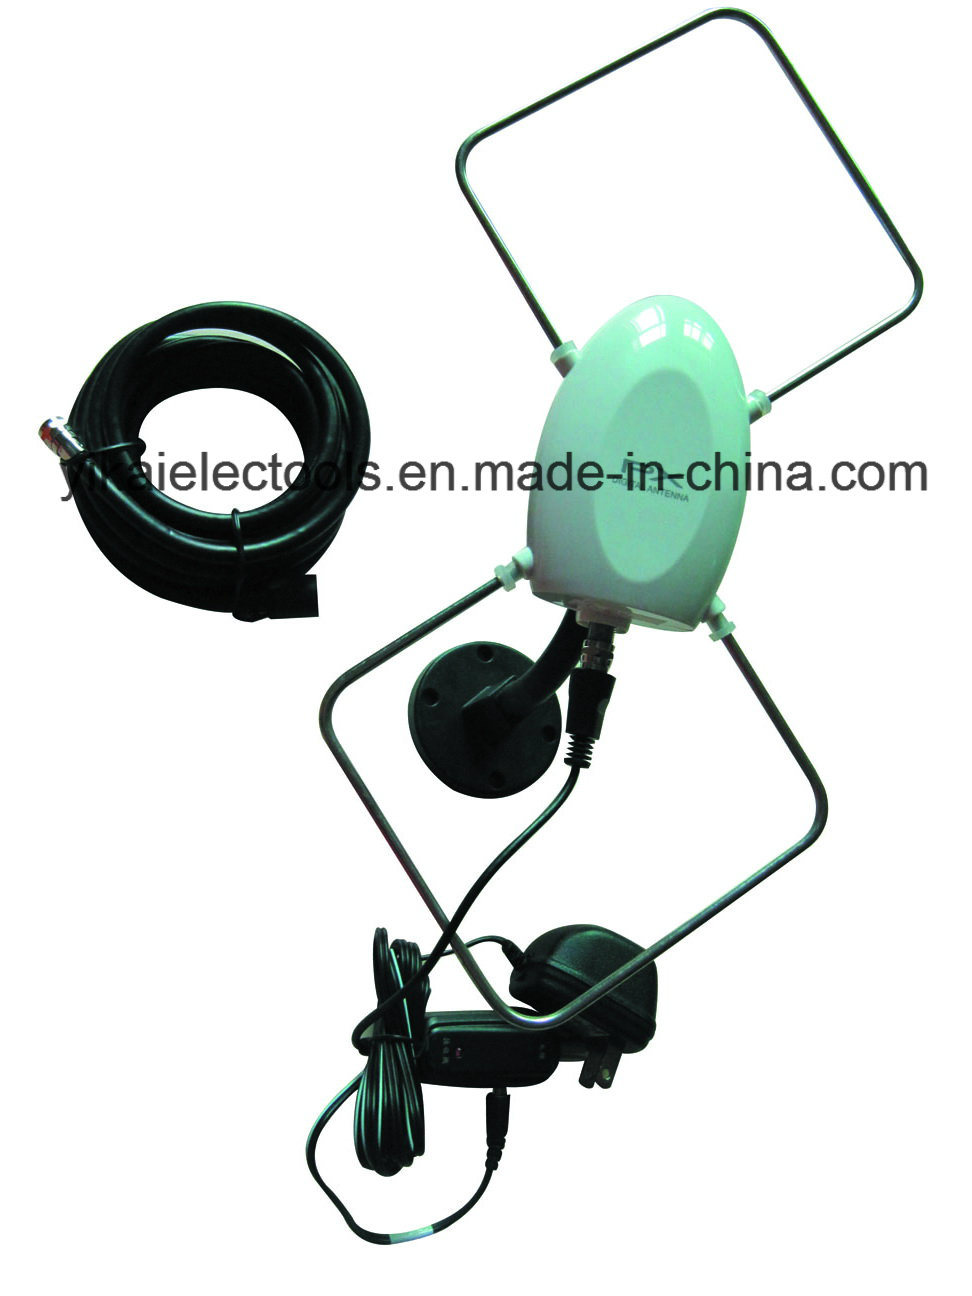 Indoor and Outdoor Digital HD TV Antenna with Universal Direction Base